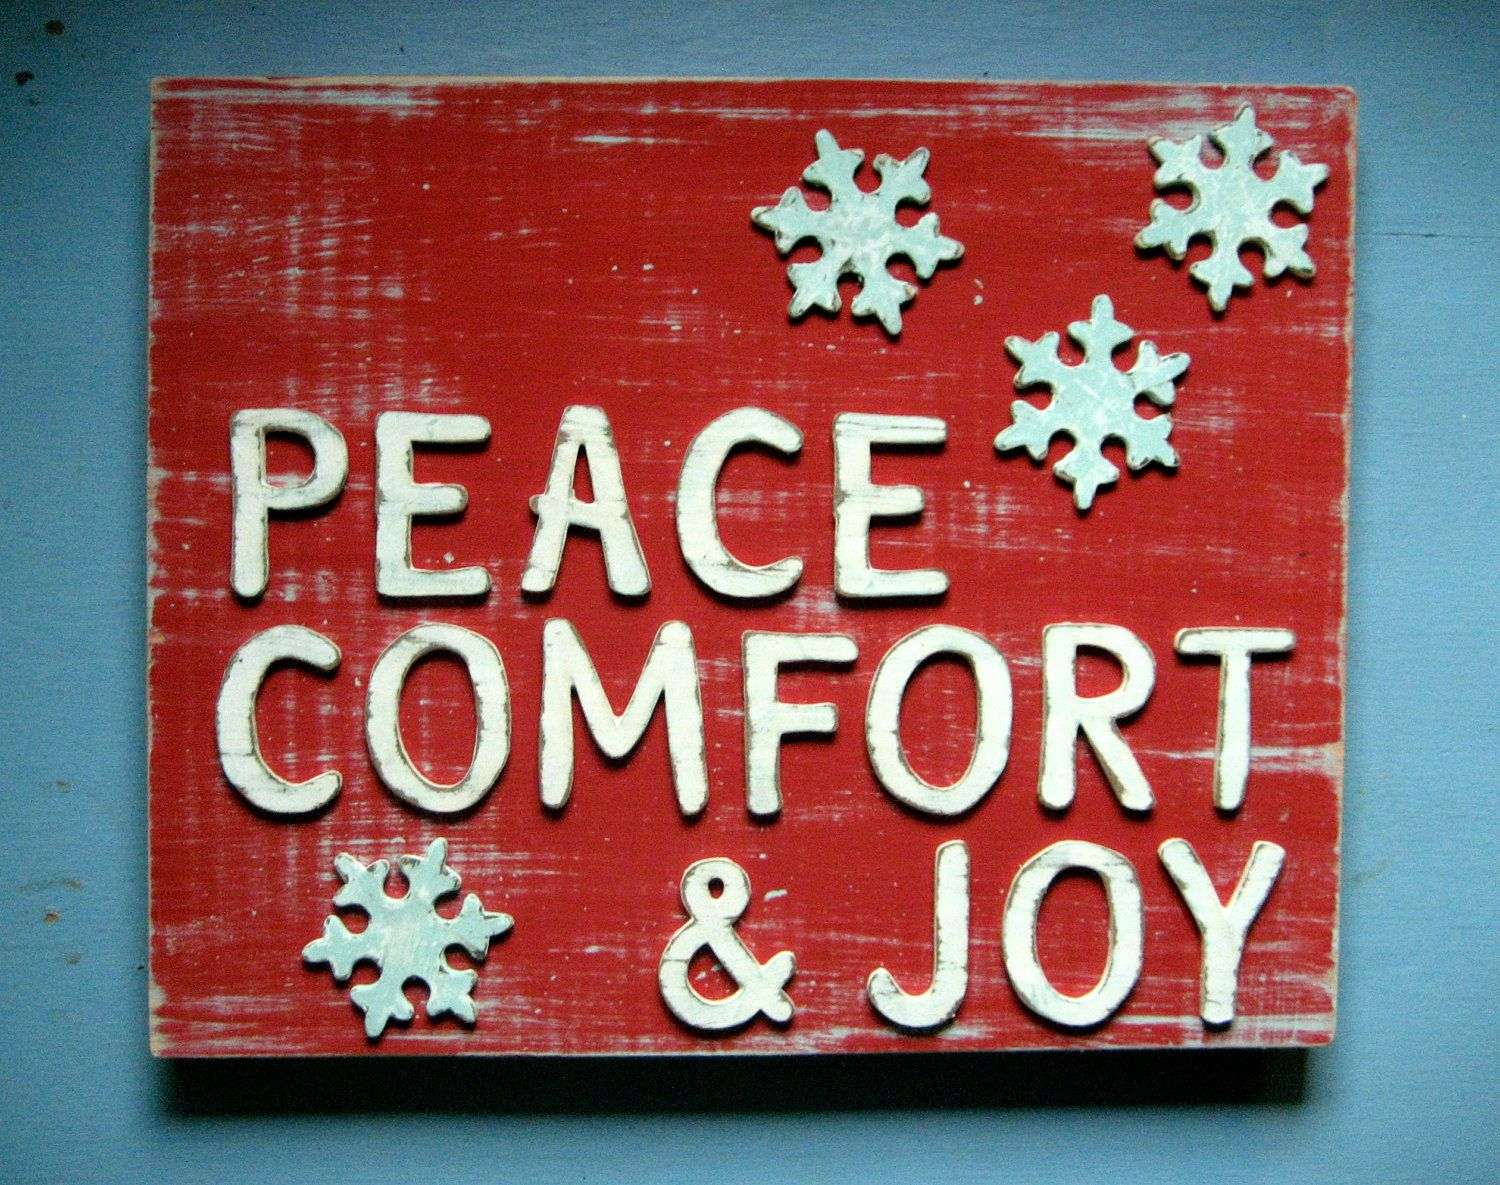 Christmas Sign Decorations Fascinating Peace Comfort & Joy  I ❤ Christmas  Pinterest  Holiday Signs Decorating Inspiration